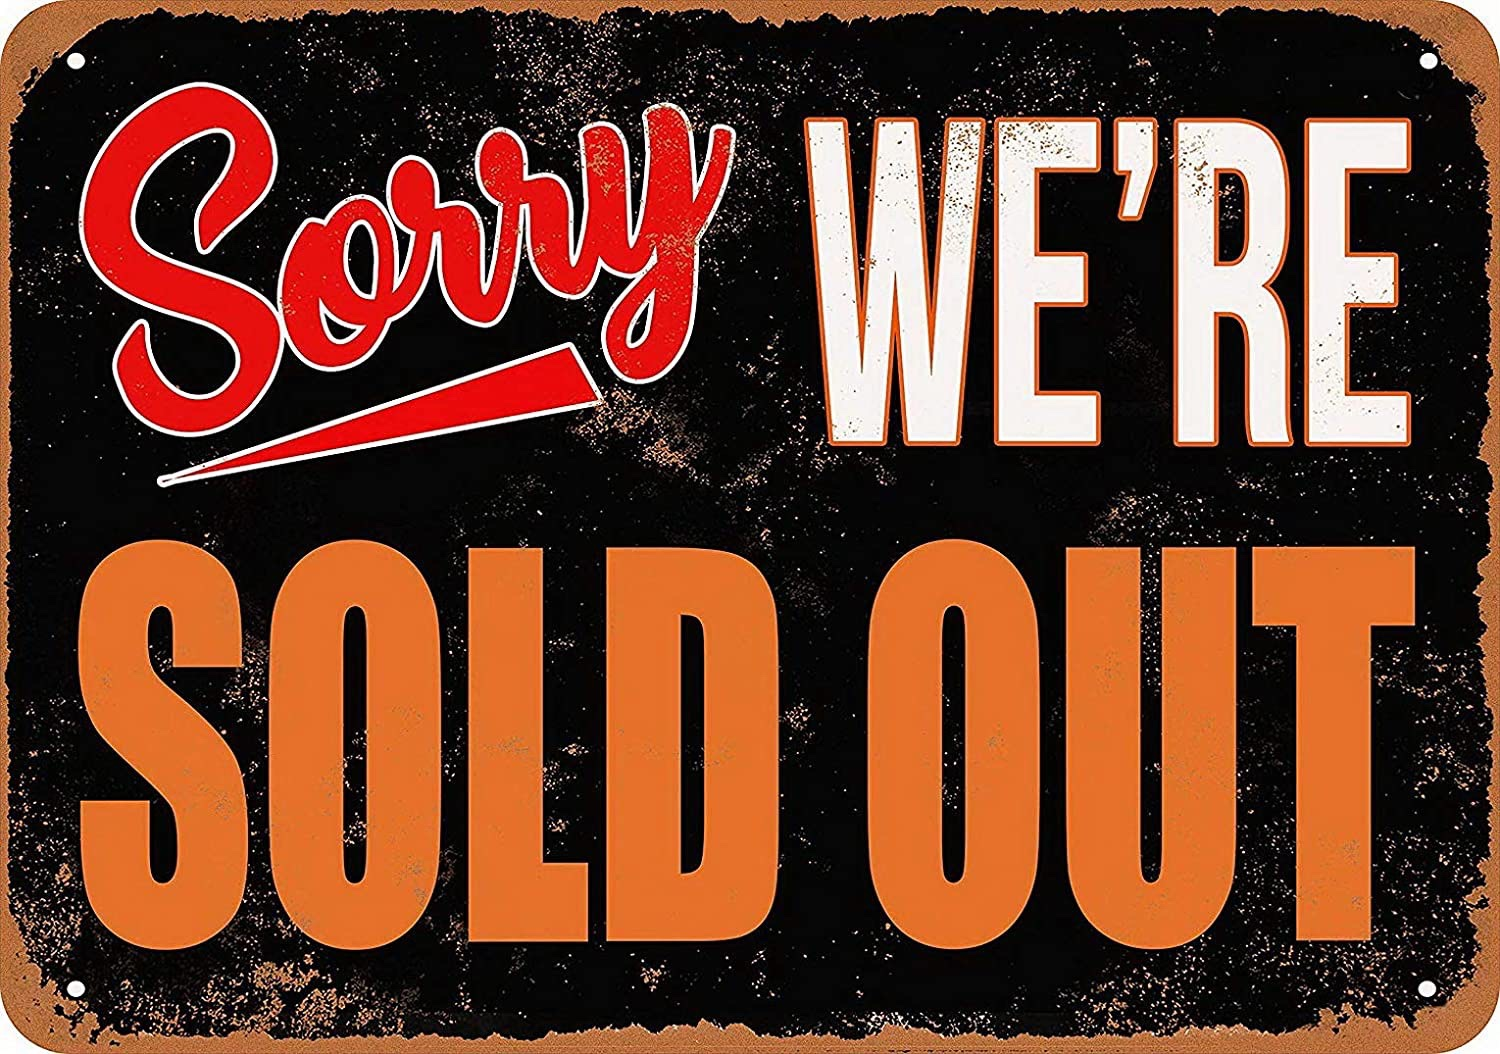 We're Officially Sold Out